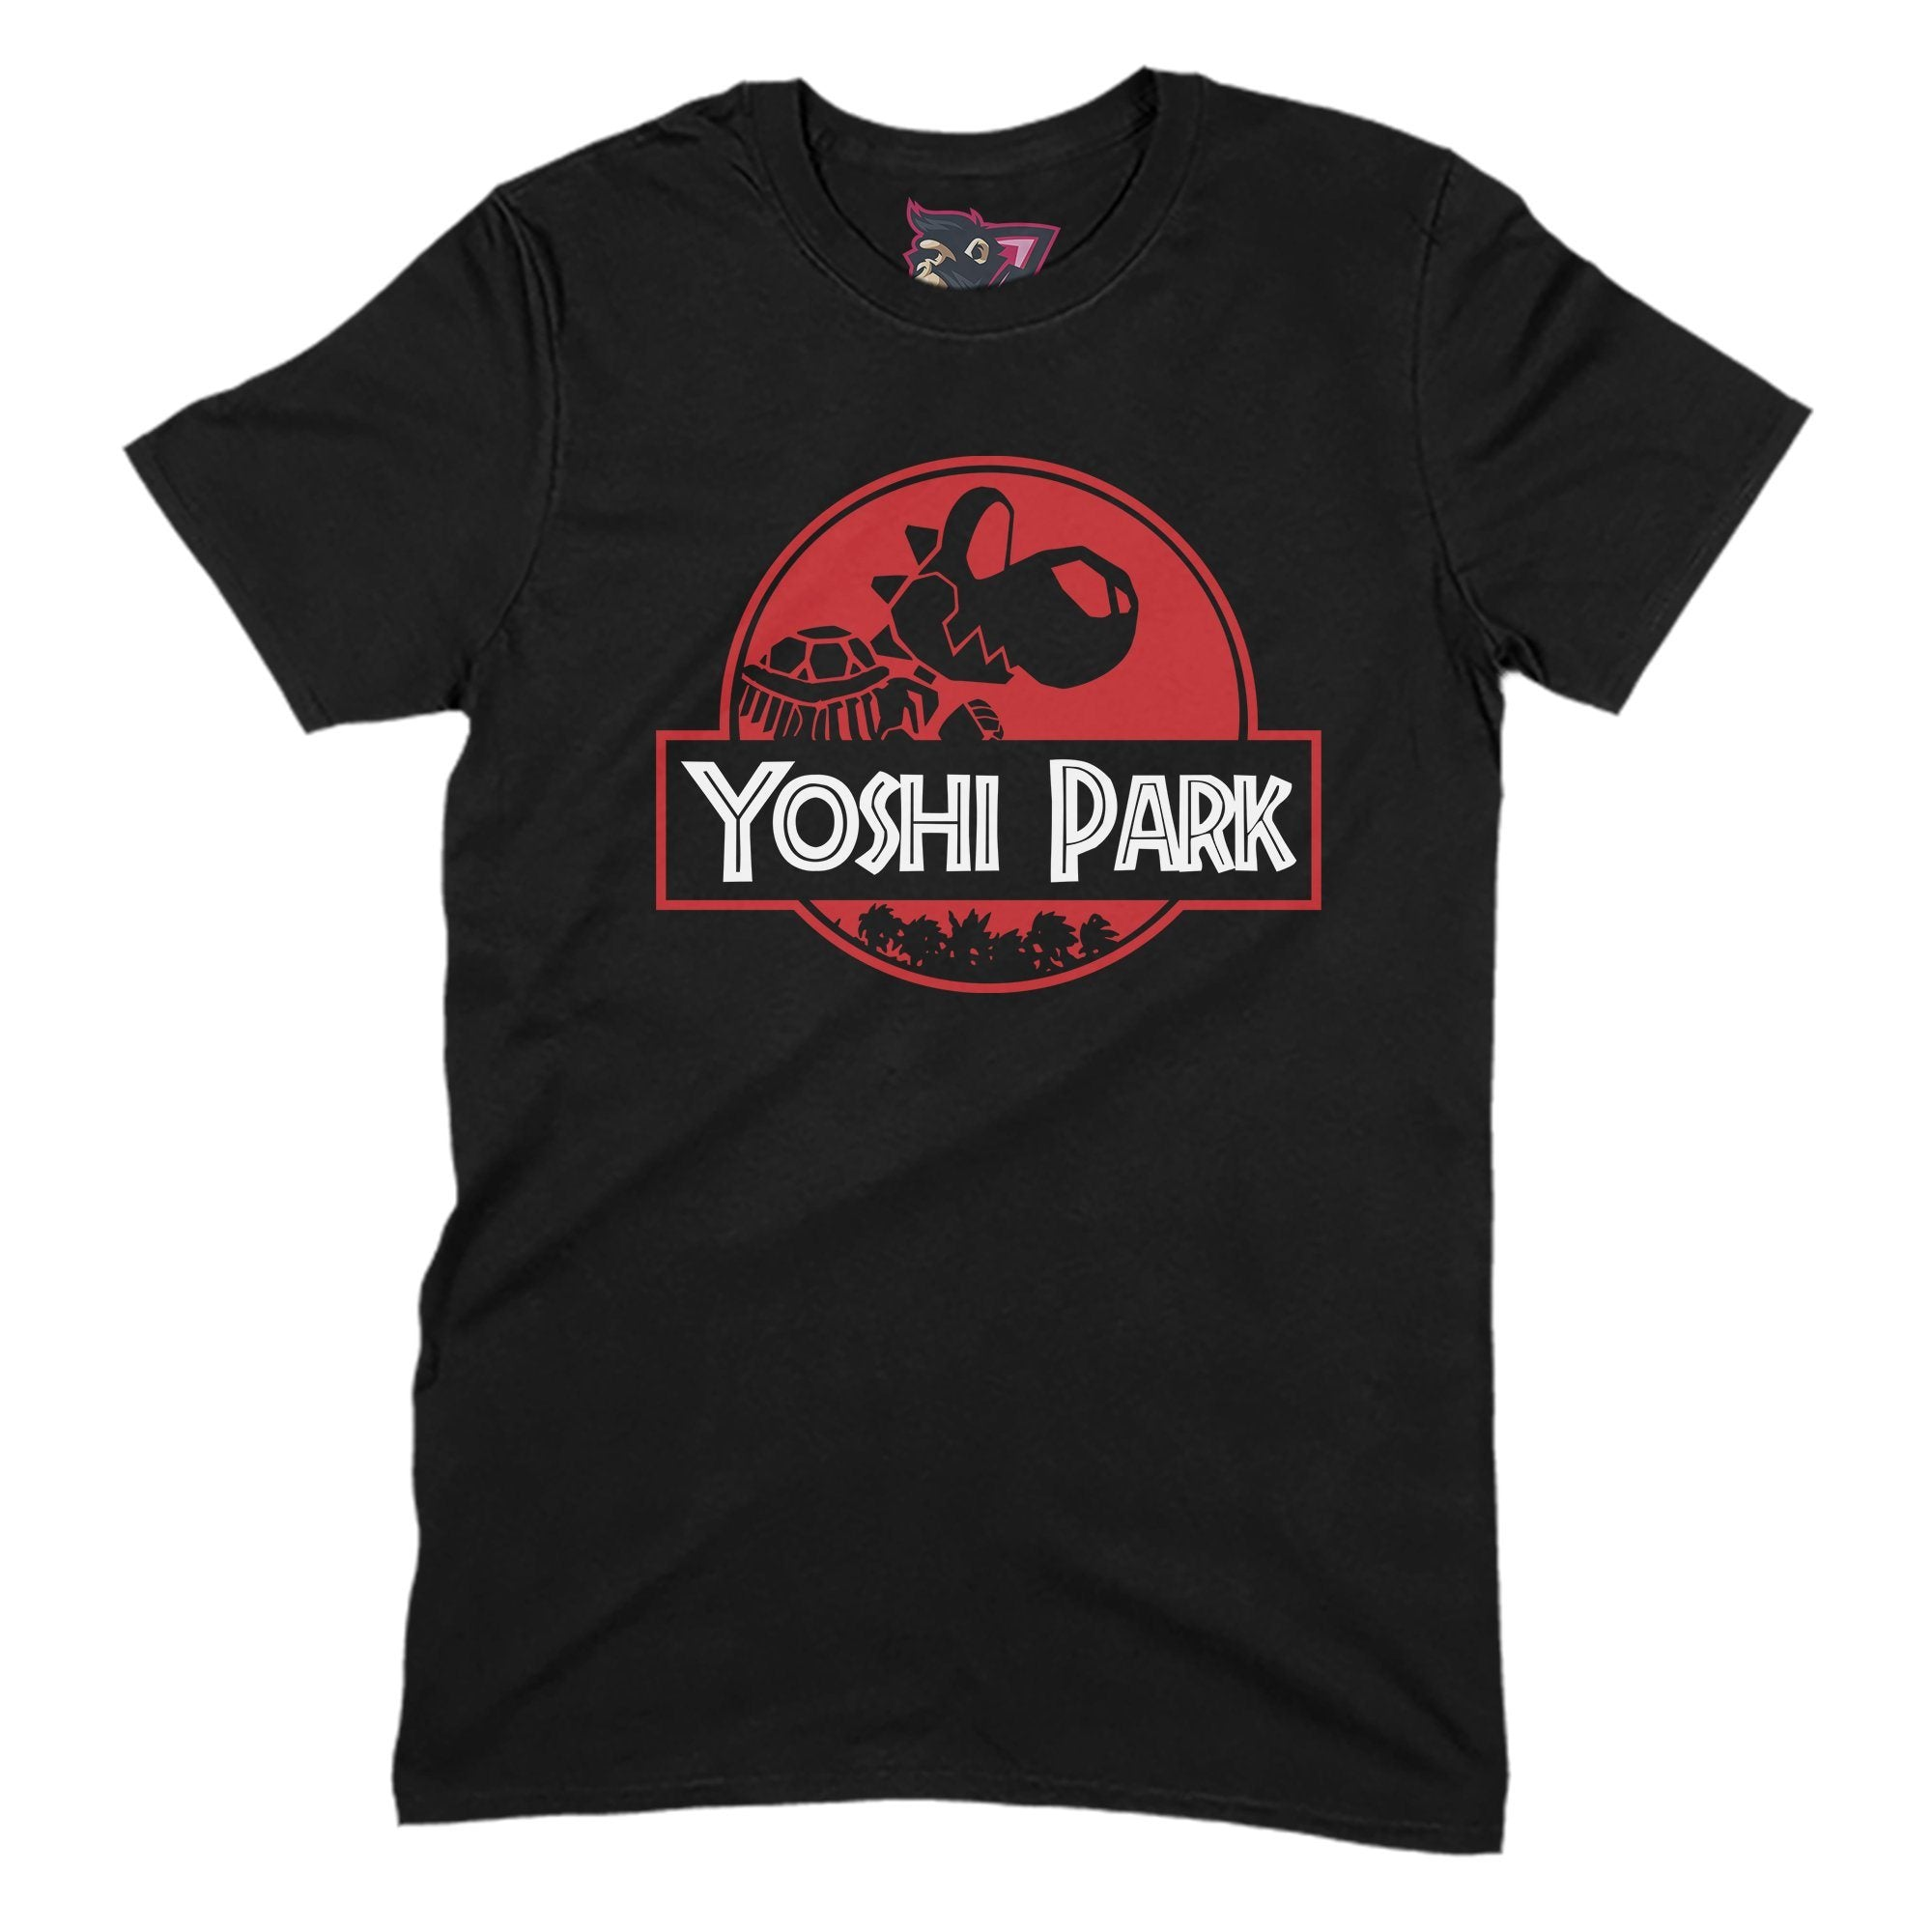 Yoshi Park Primate Novelty Unisex T-Shirt Adults: S